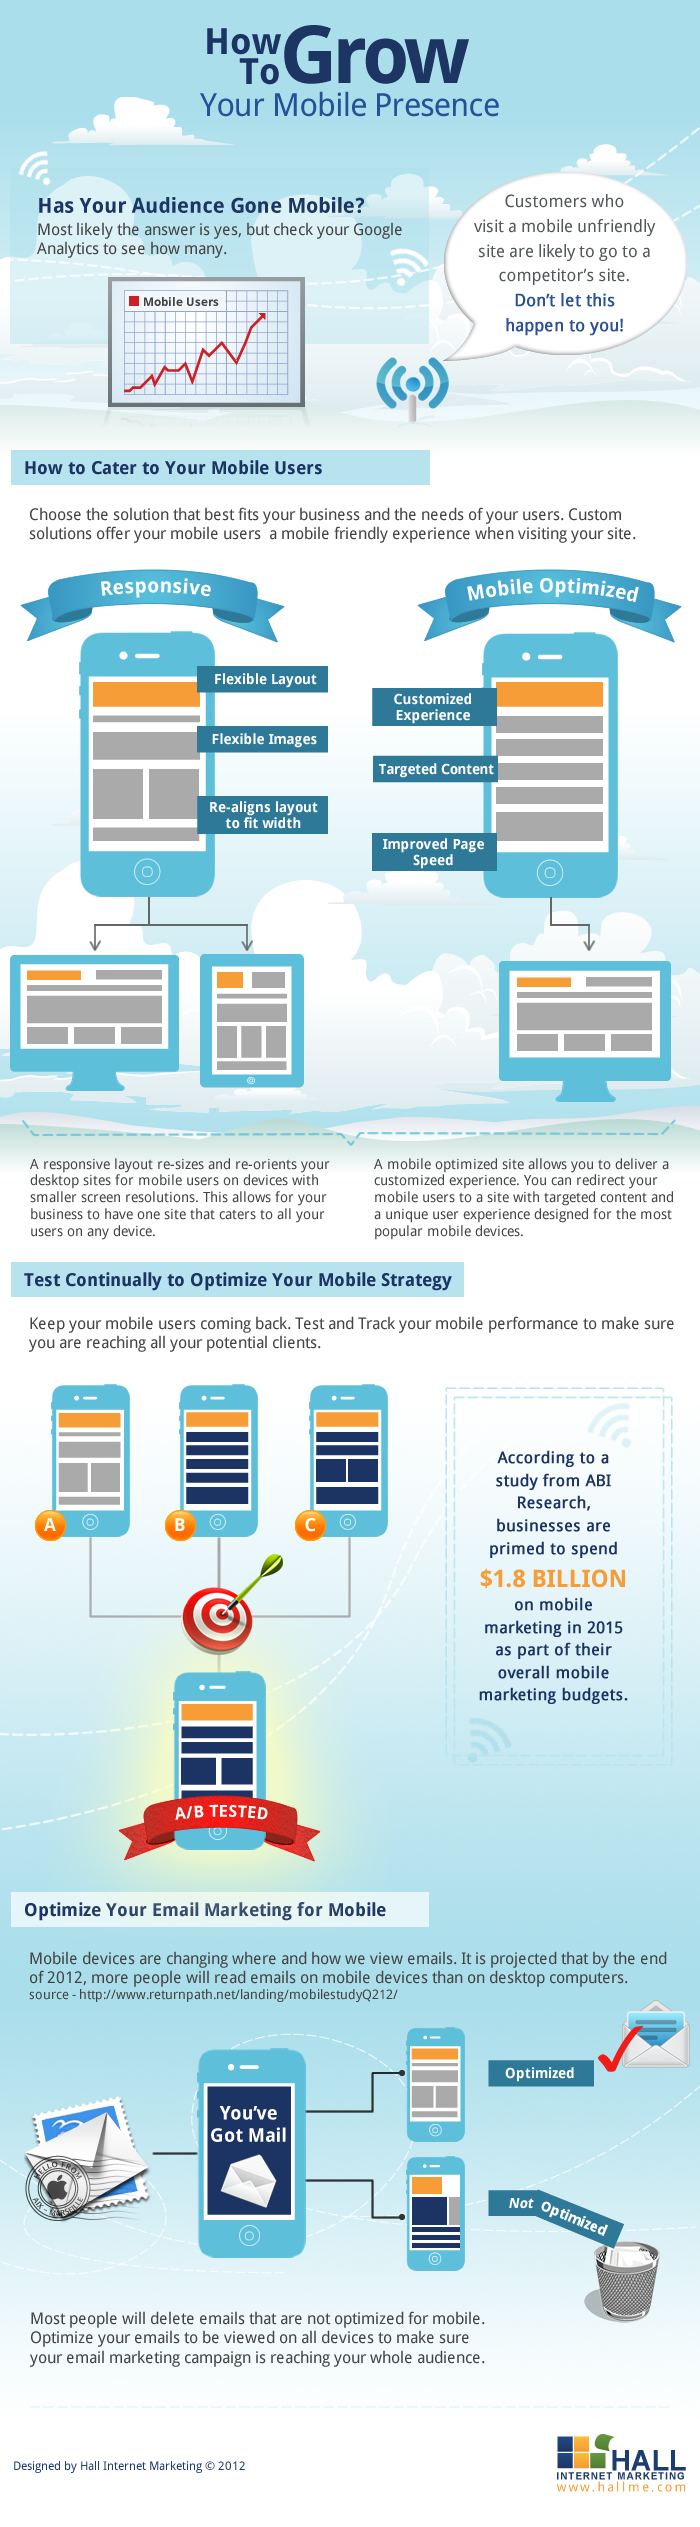 How to Grow Your Mobile Presence